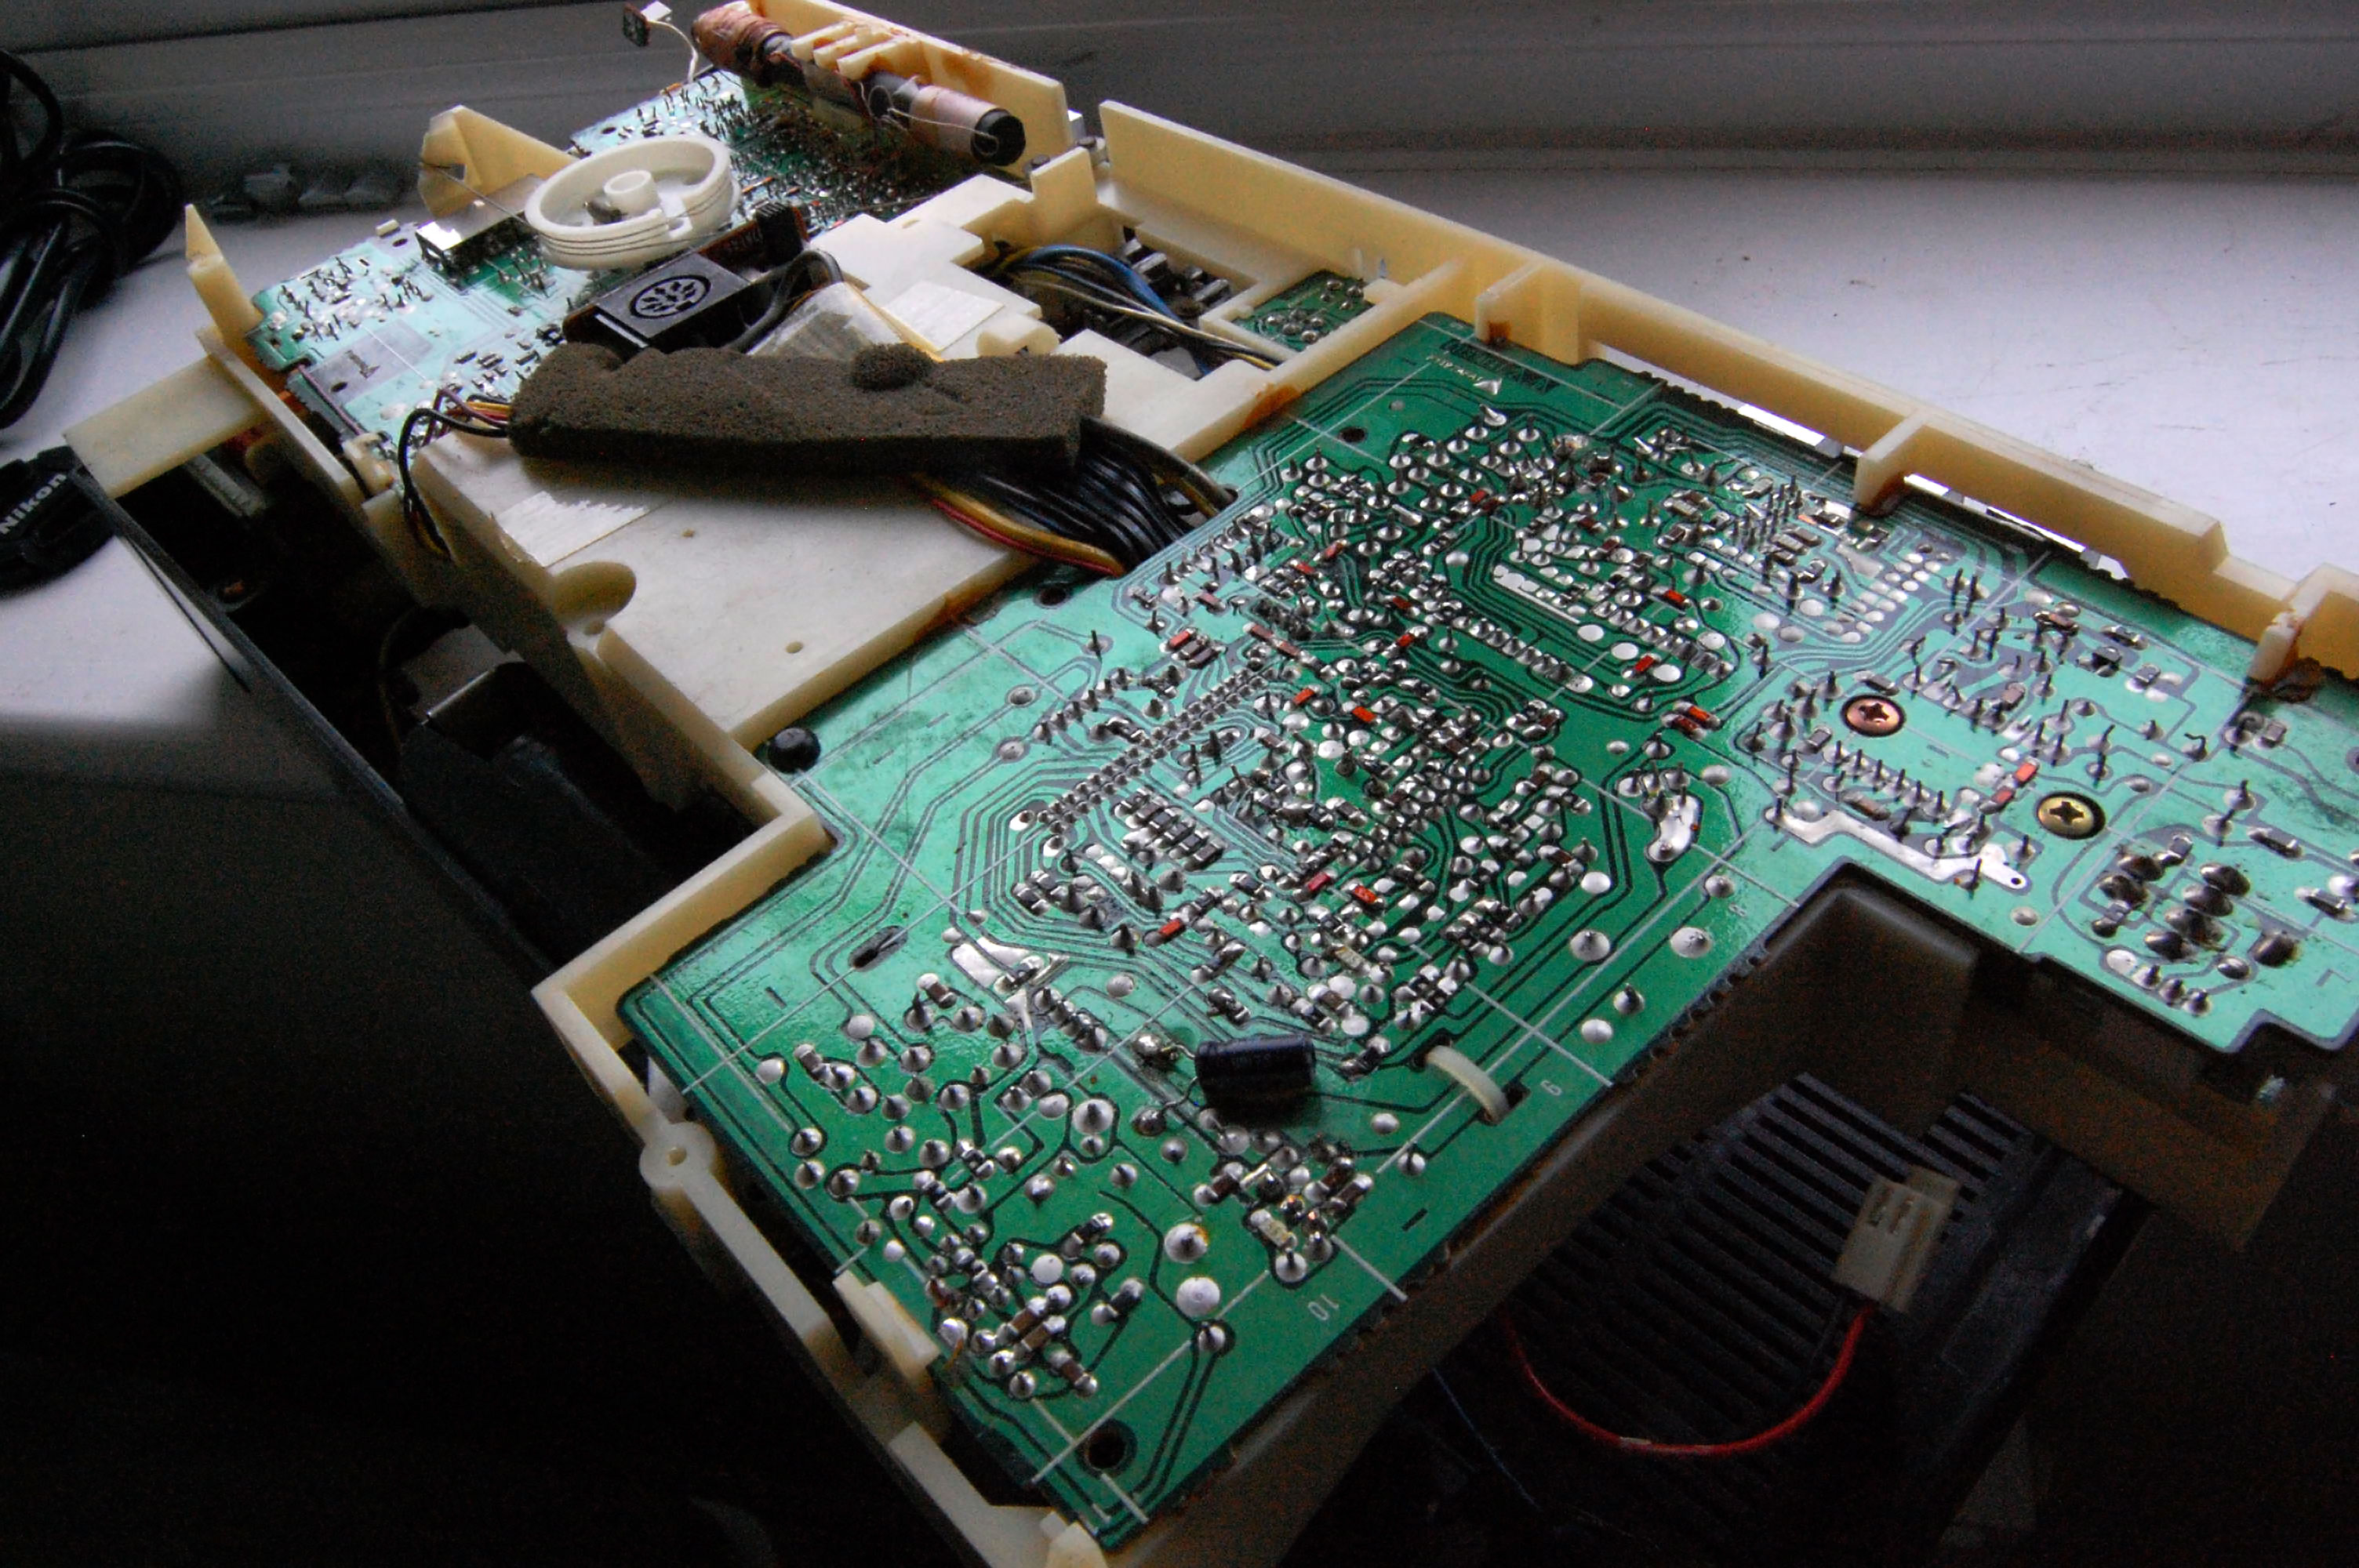 Hacking a line-in socket into an 80s radio and cassette